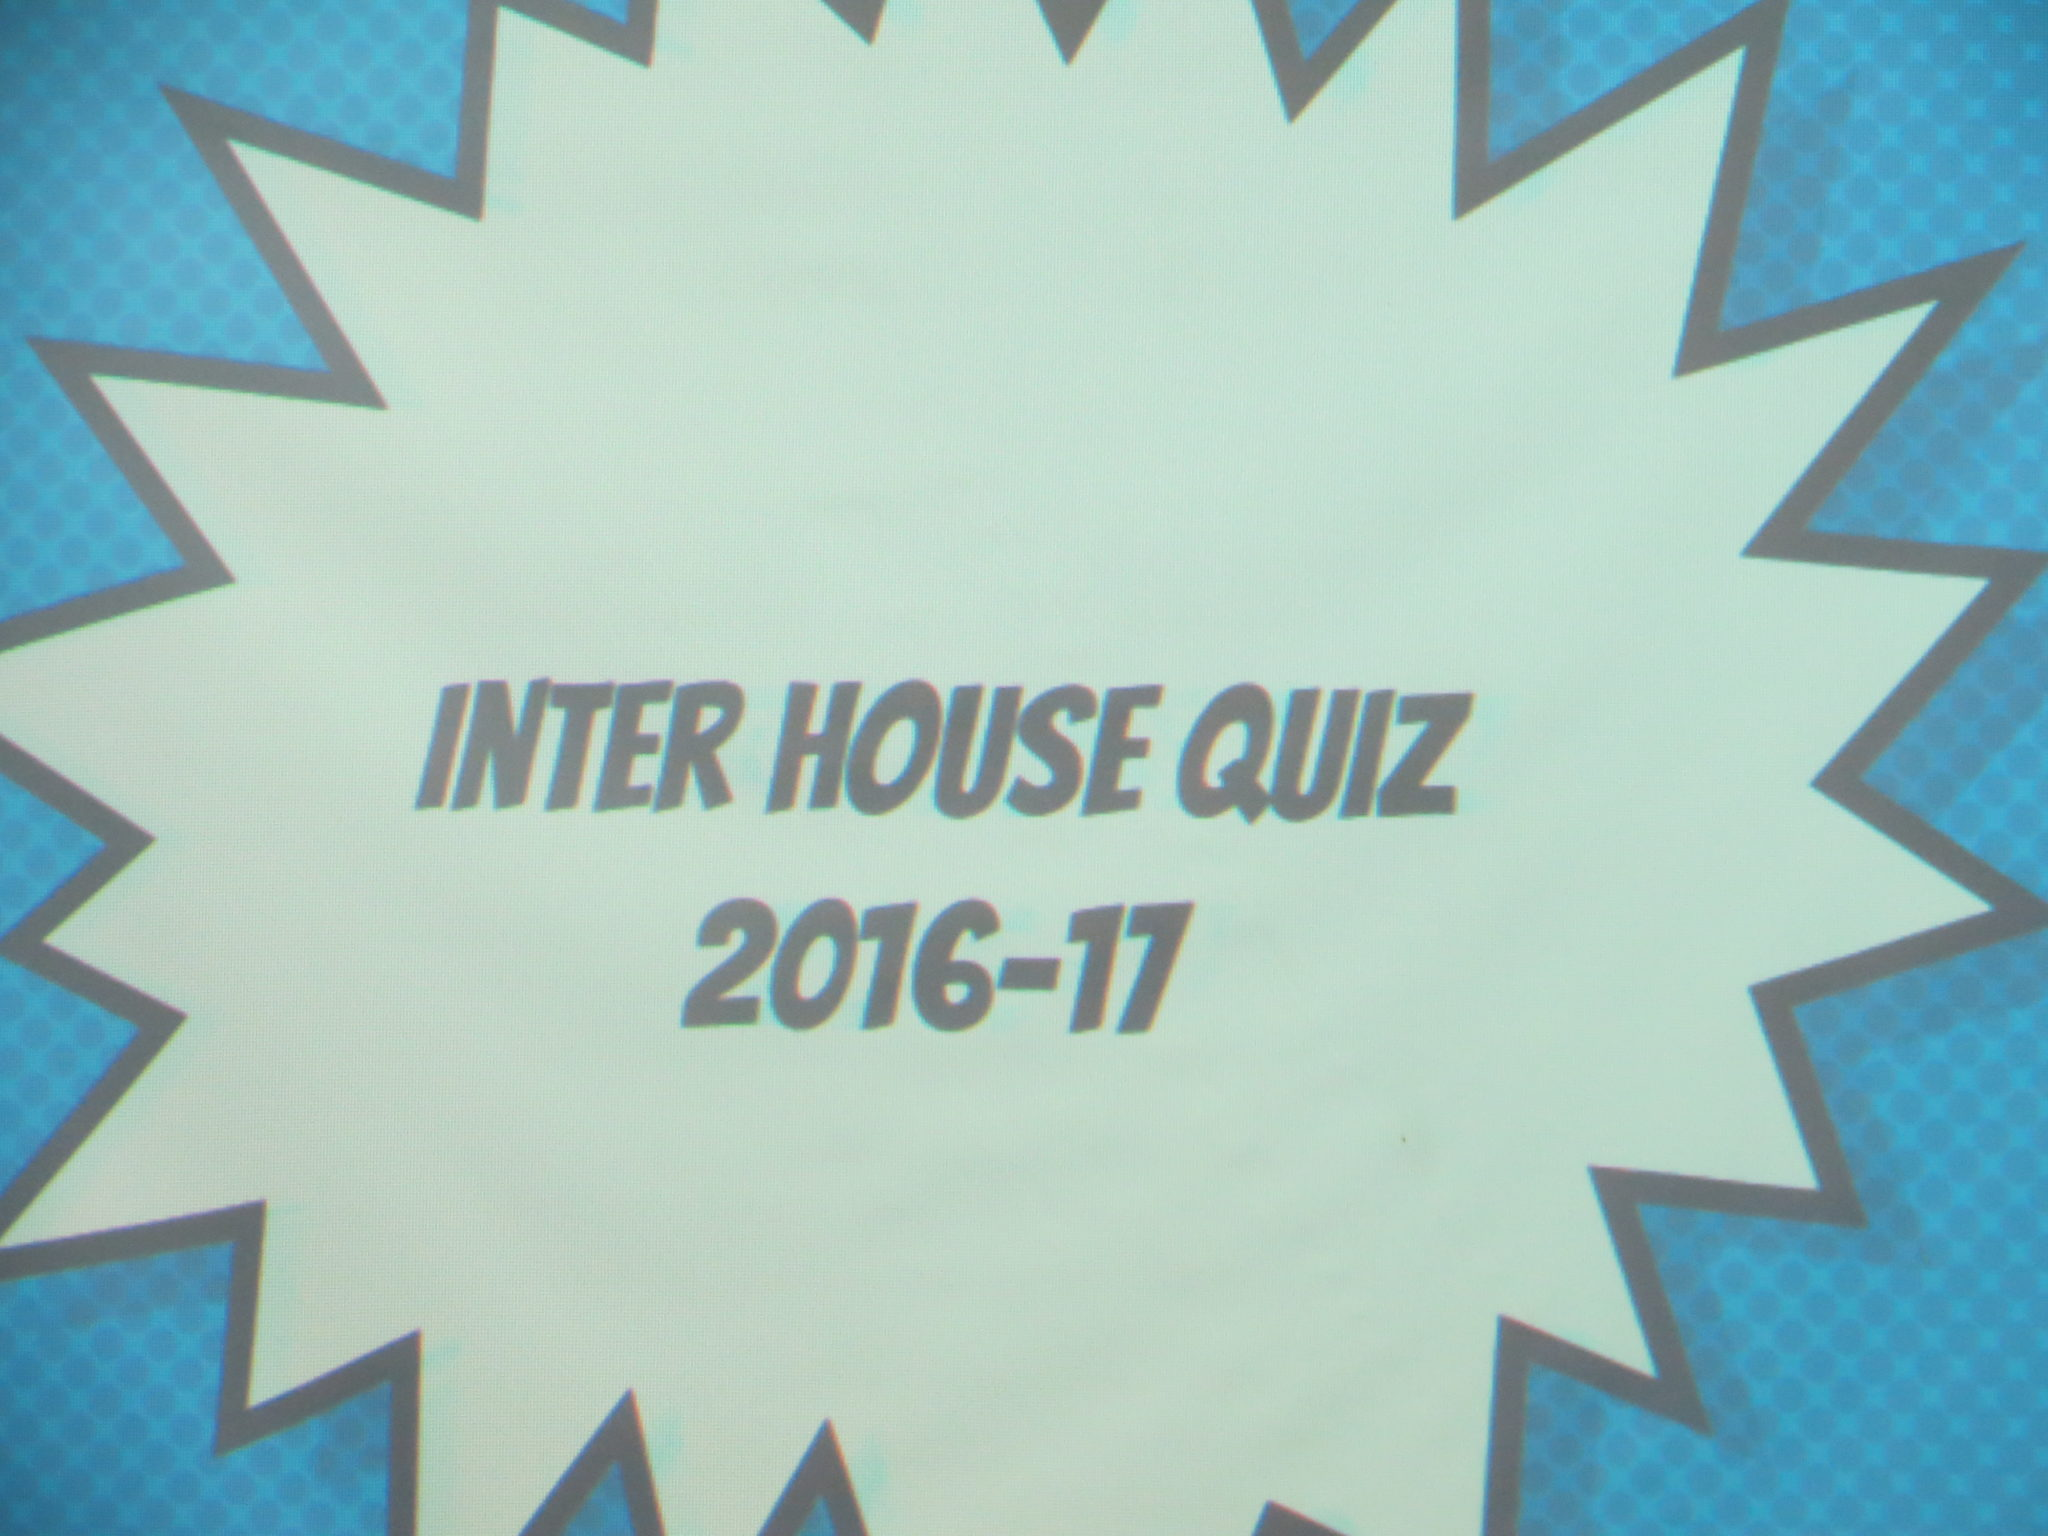 Inter House Quiz 2016-17